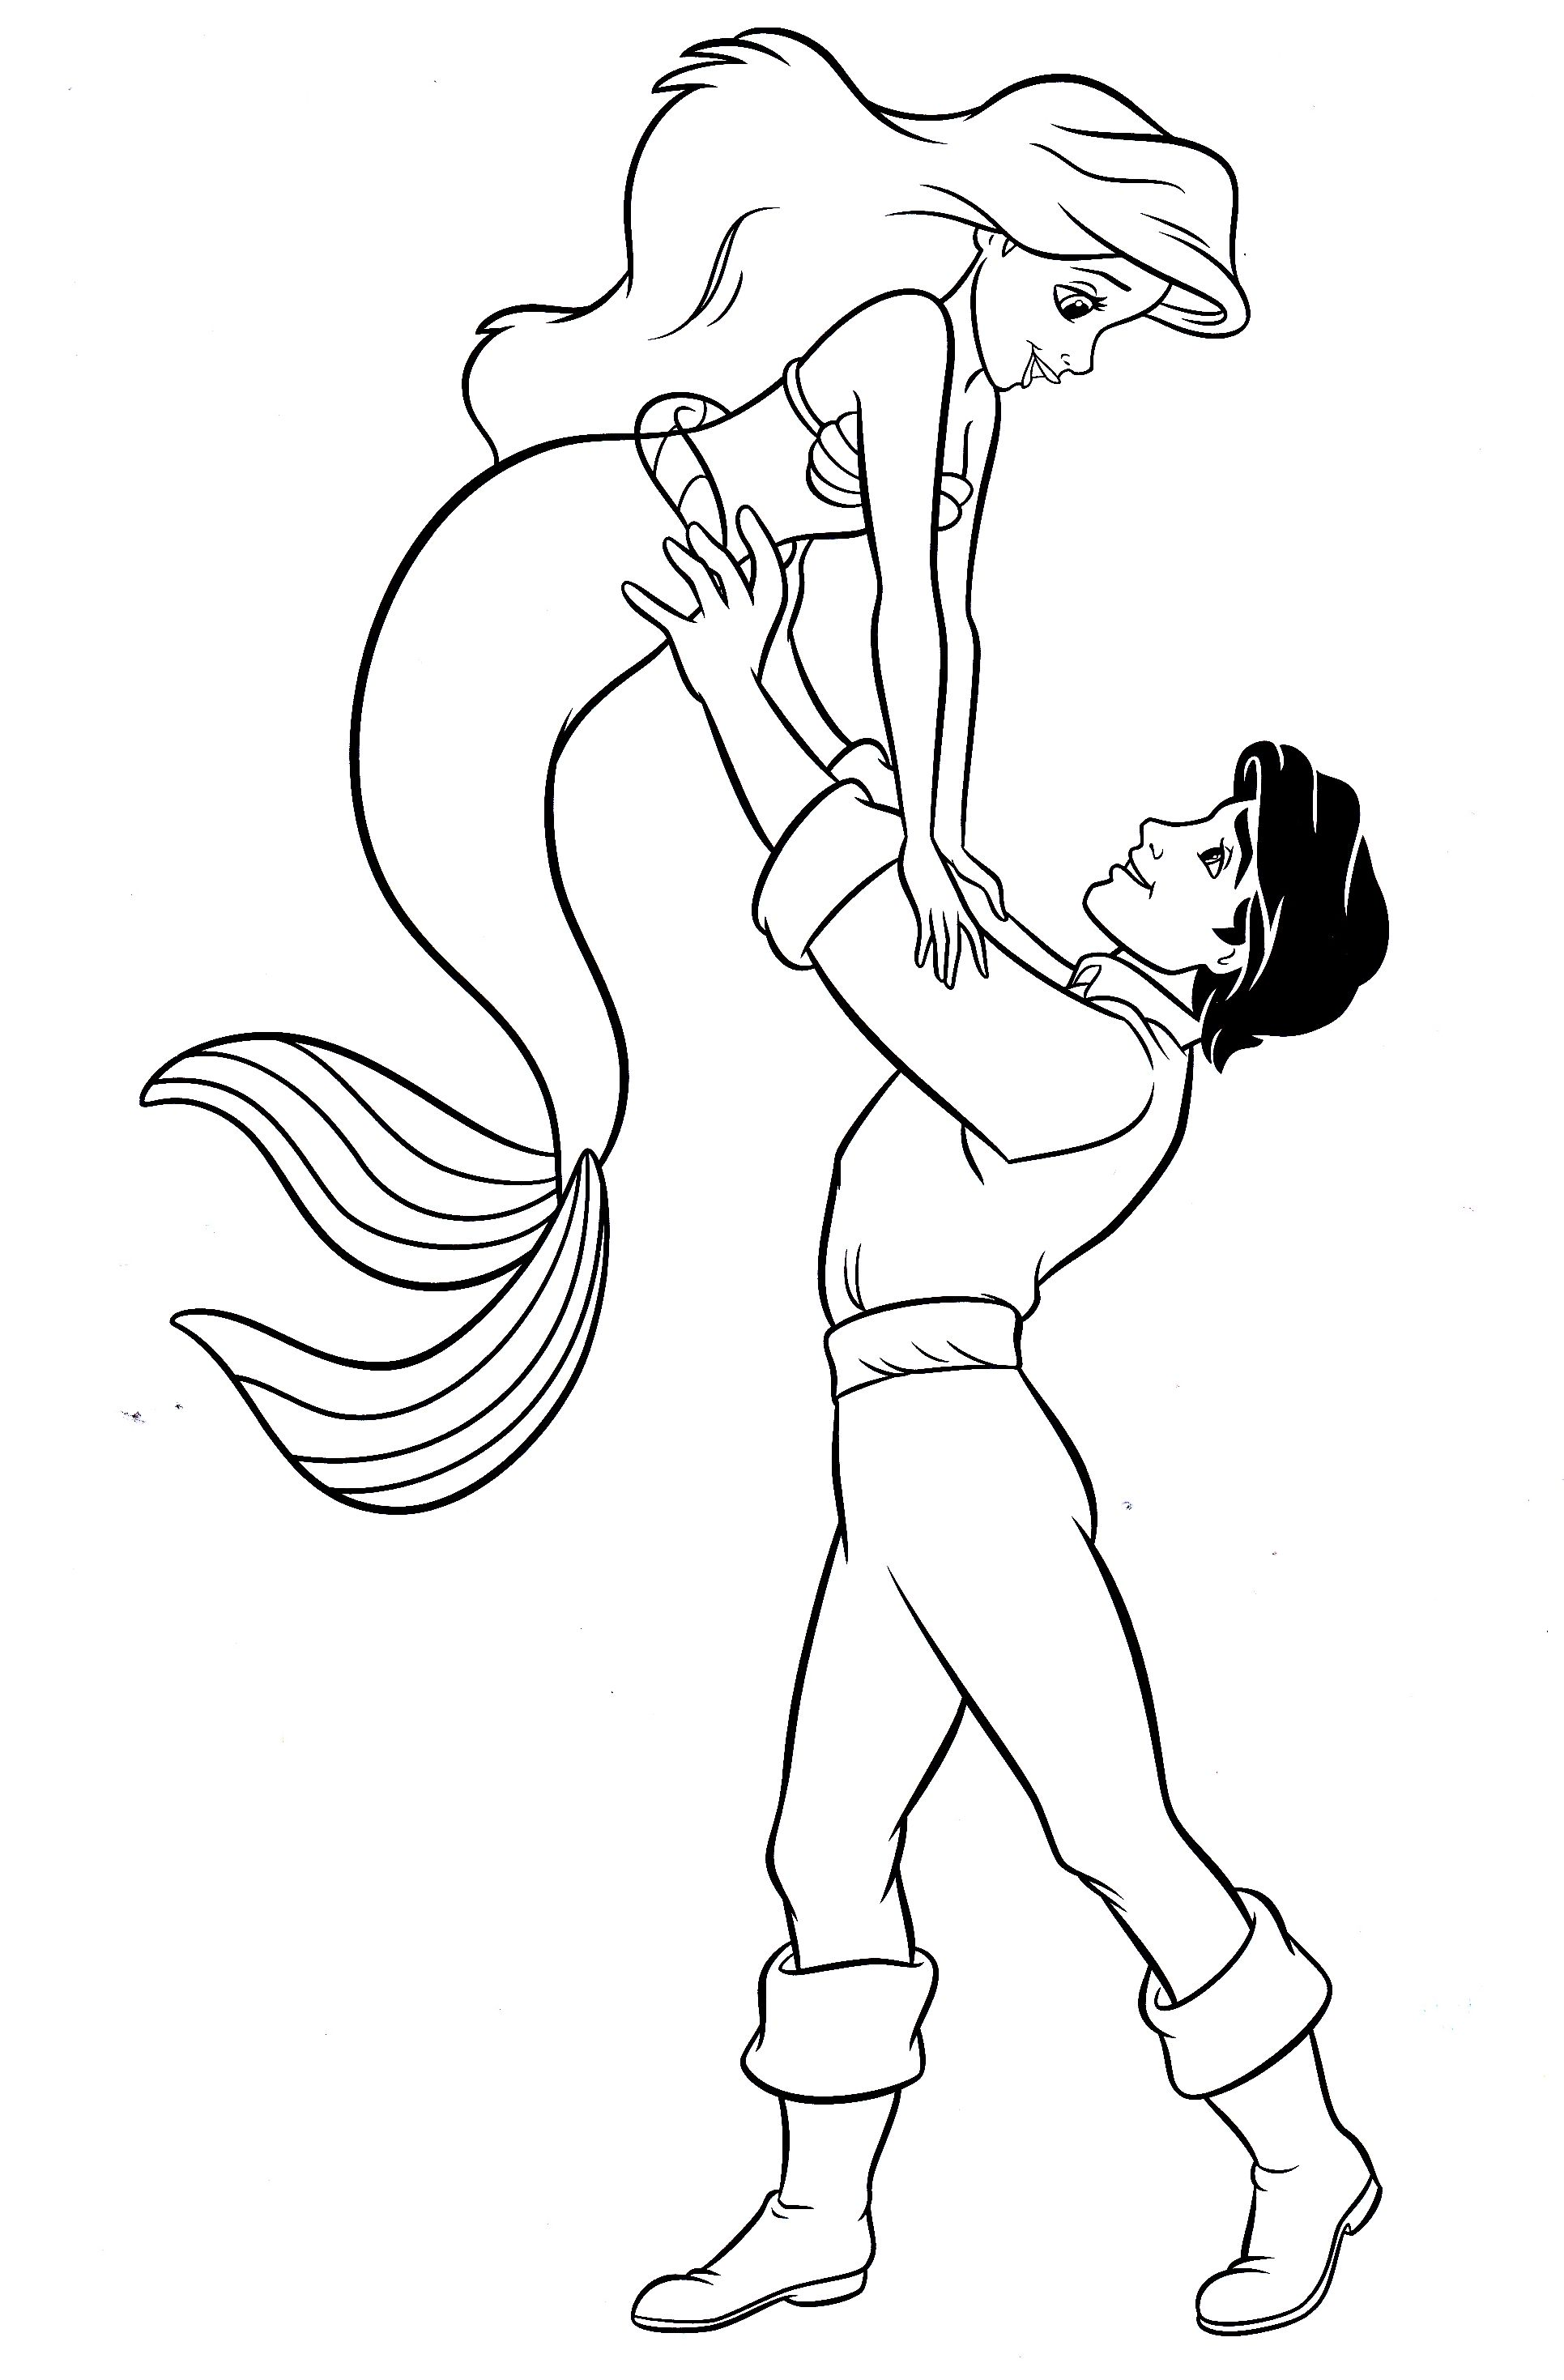 princess ariel   prince eric coloring pages coloring pages pinterest prince eric  princess Ariel and Eric Drawing  Coloring Pages Of Ariel And Eric